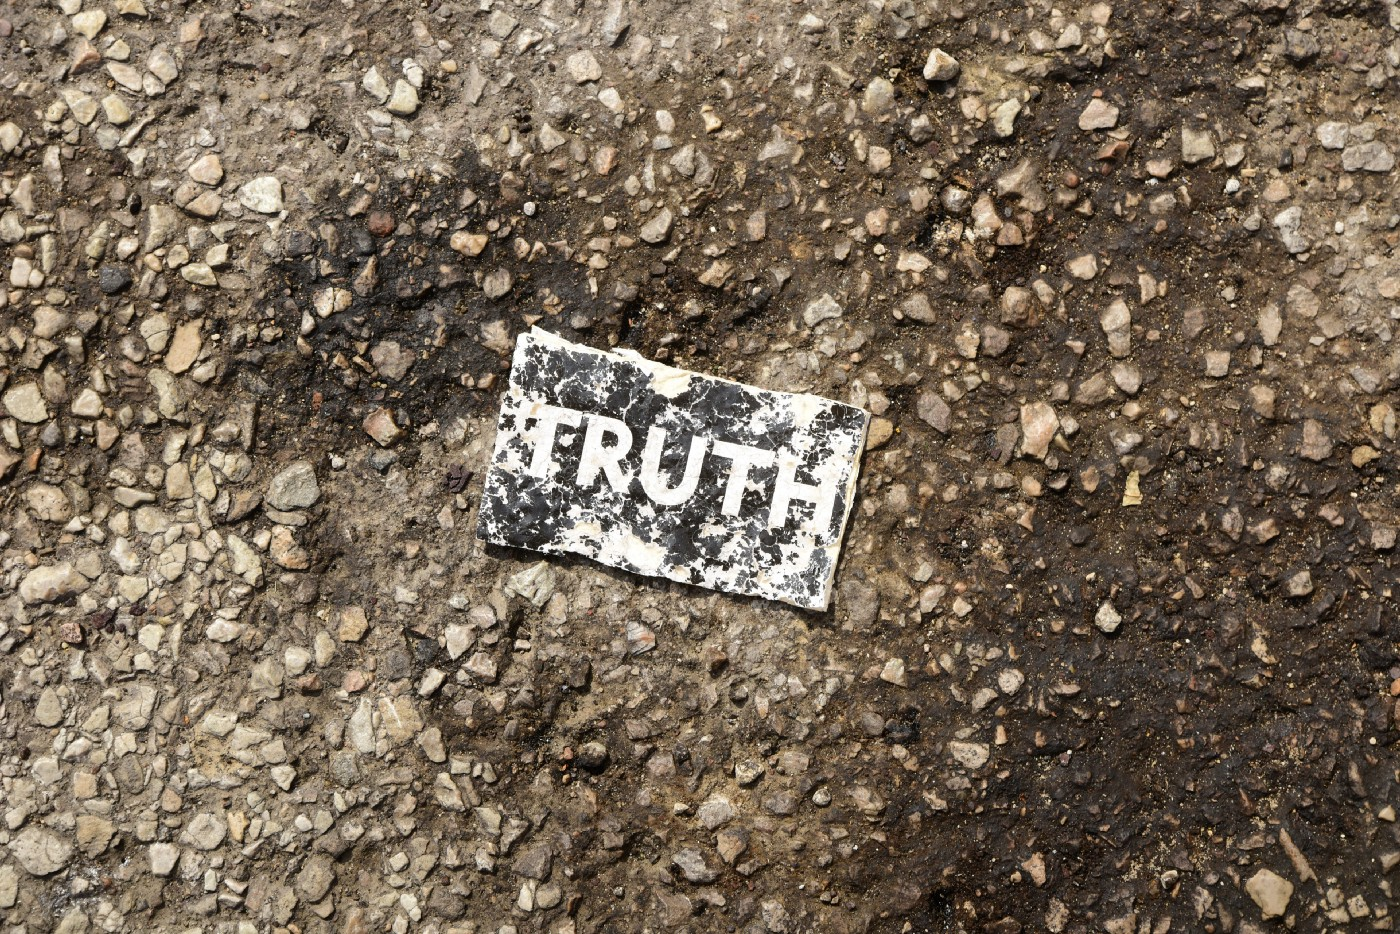 Worn black piece of paper with white letters spelling TRUTH in a pothole on worn asphalt